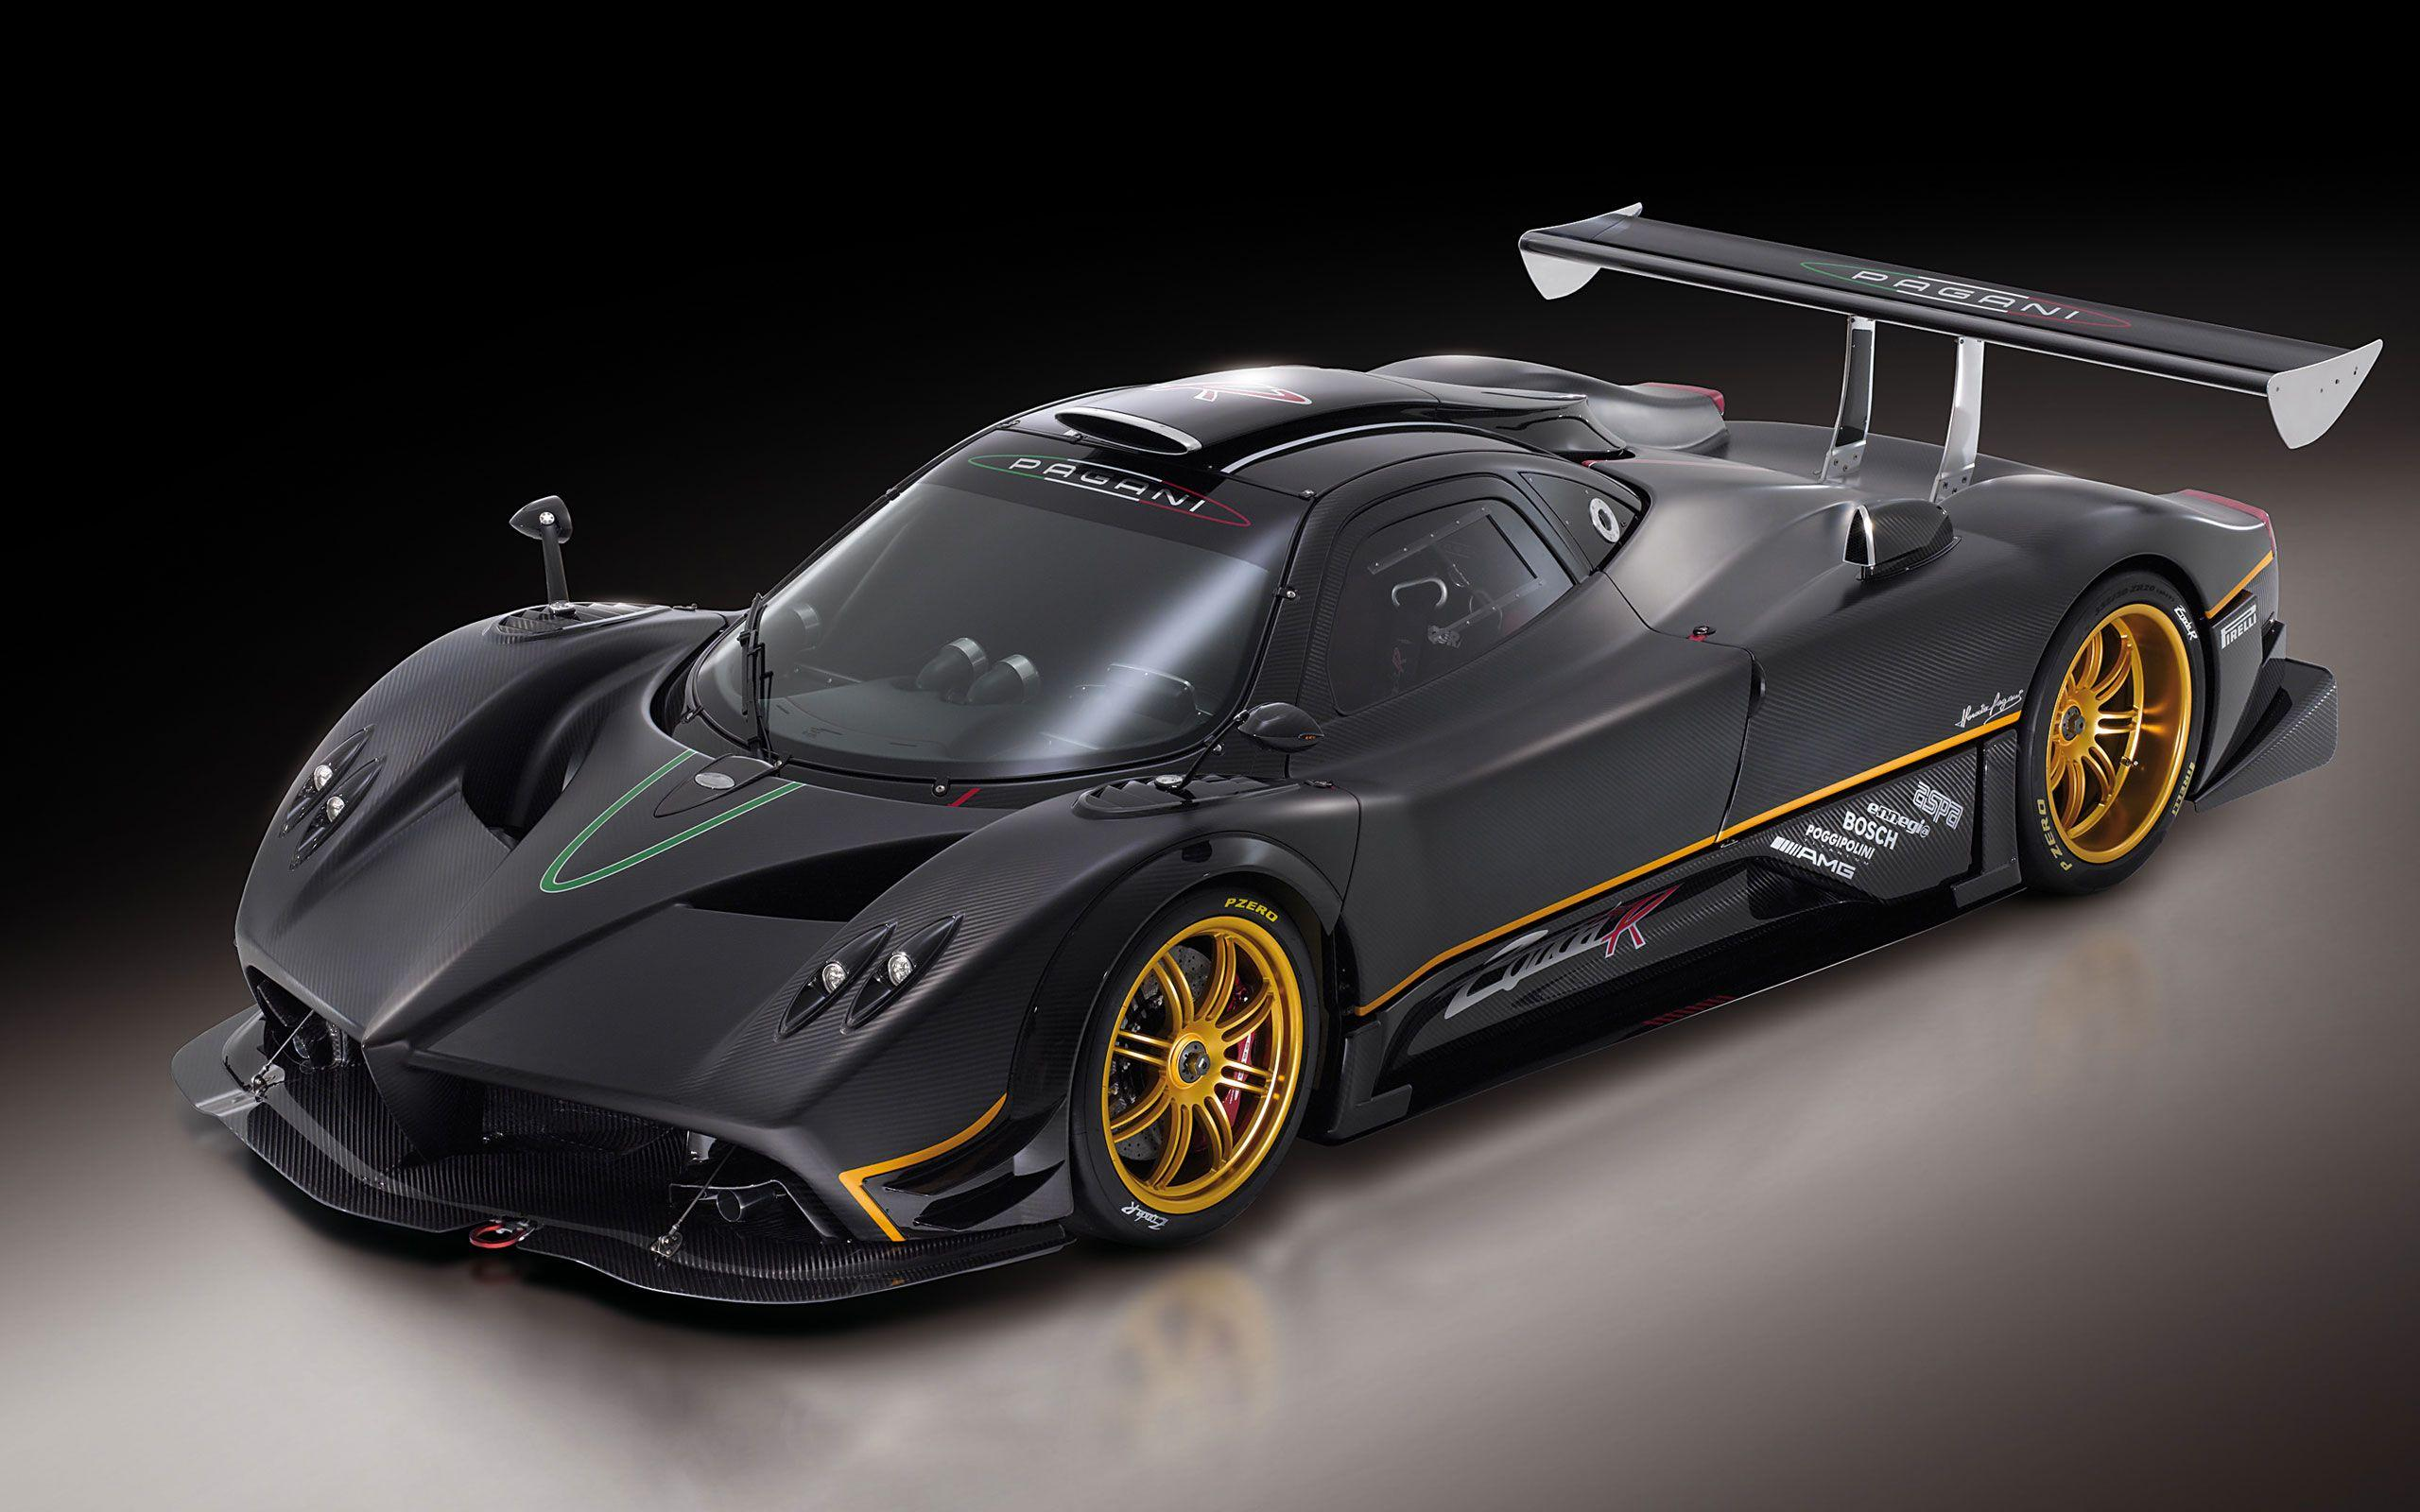 Pagani Zonda R Wallpapers 1